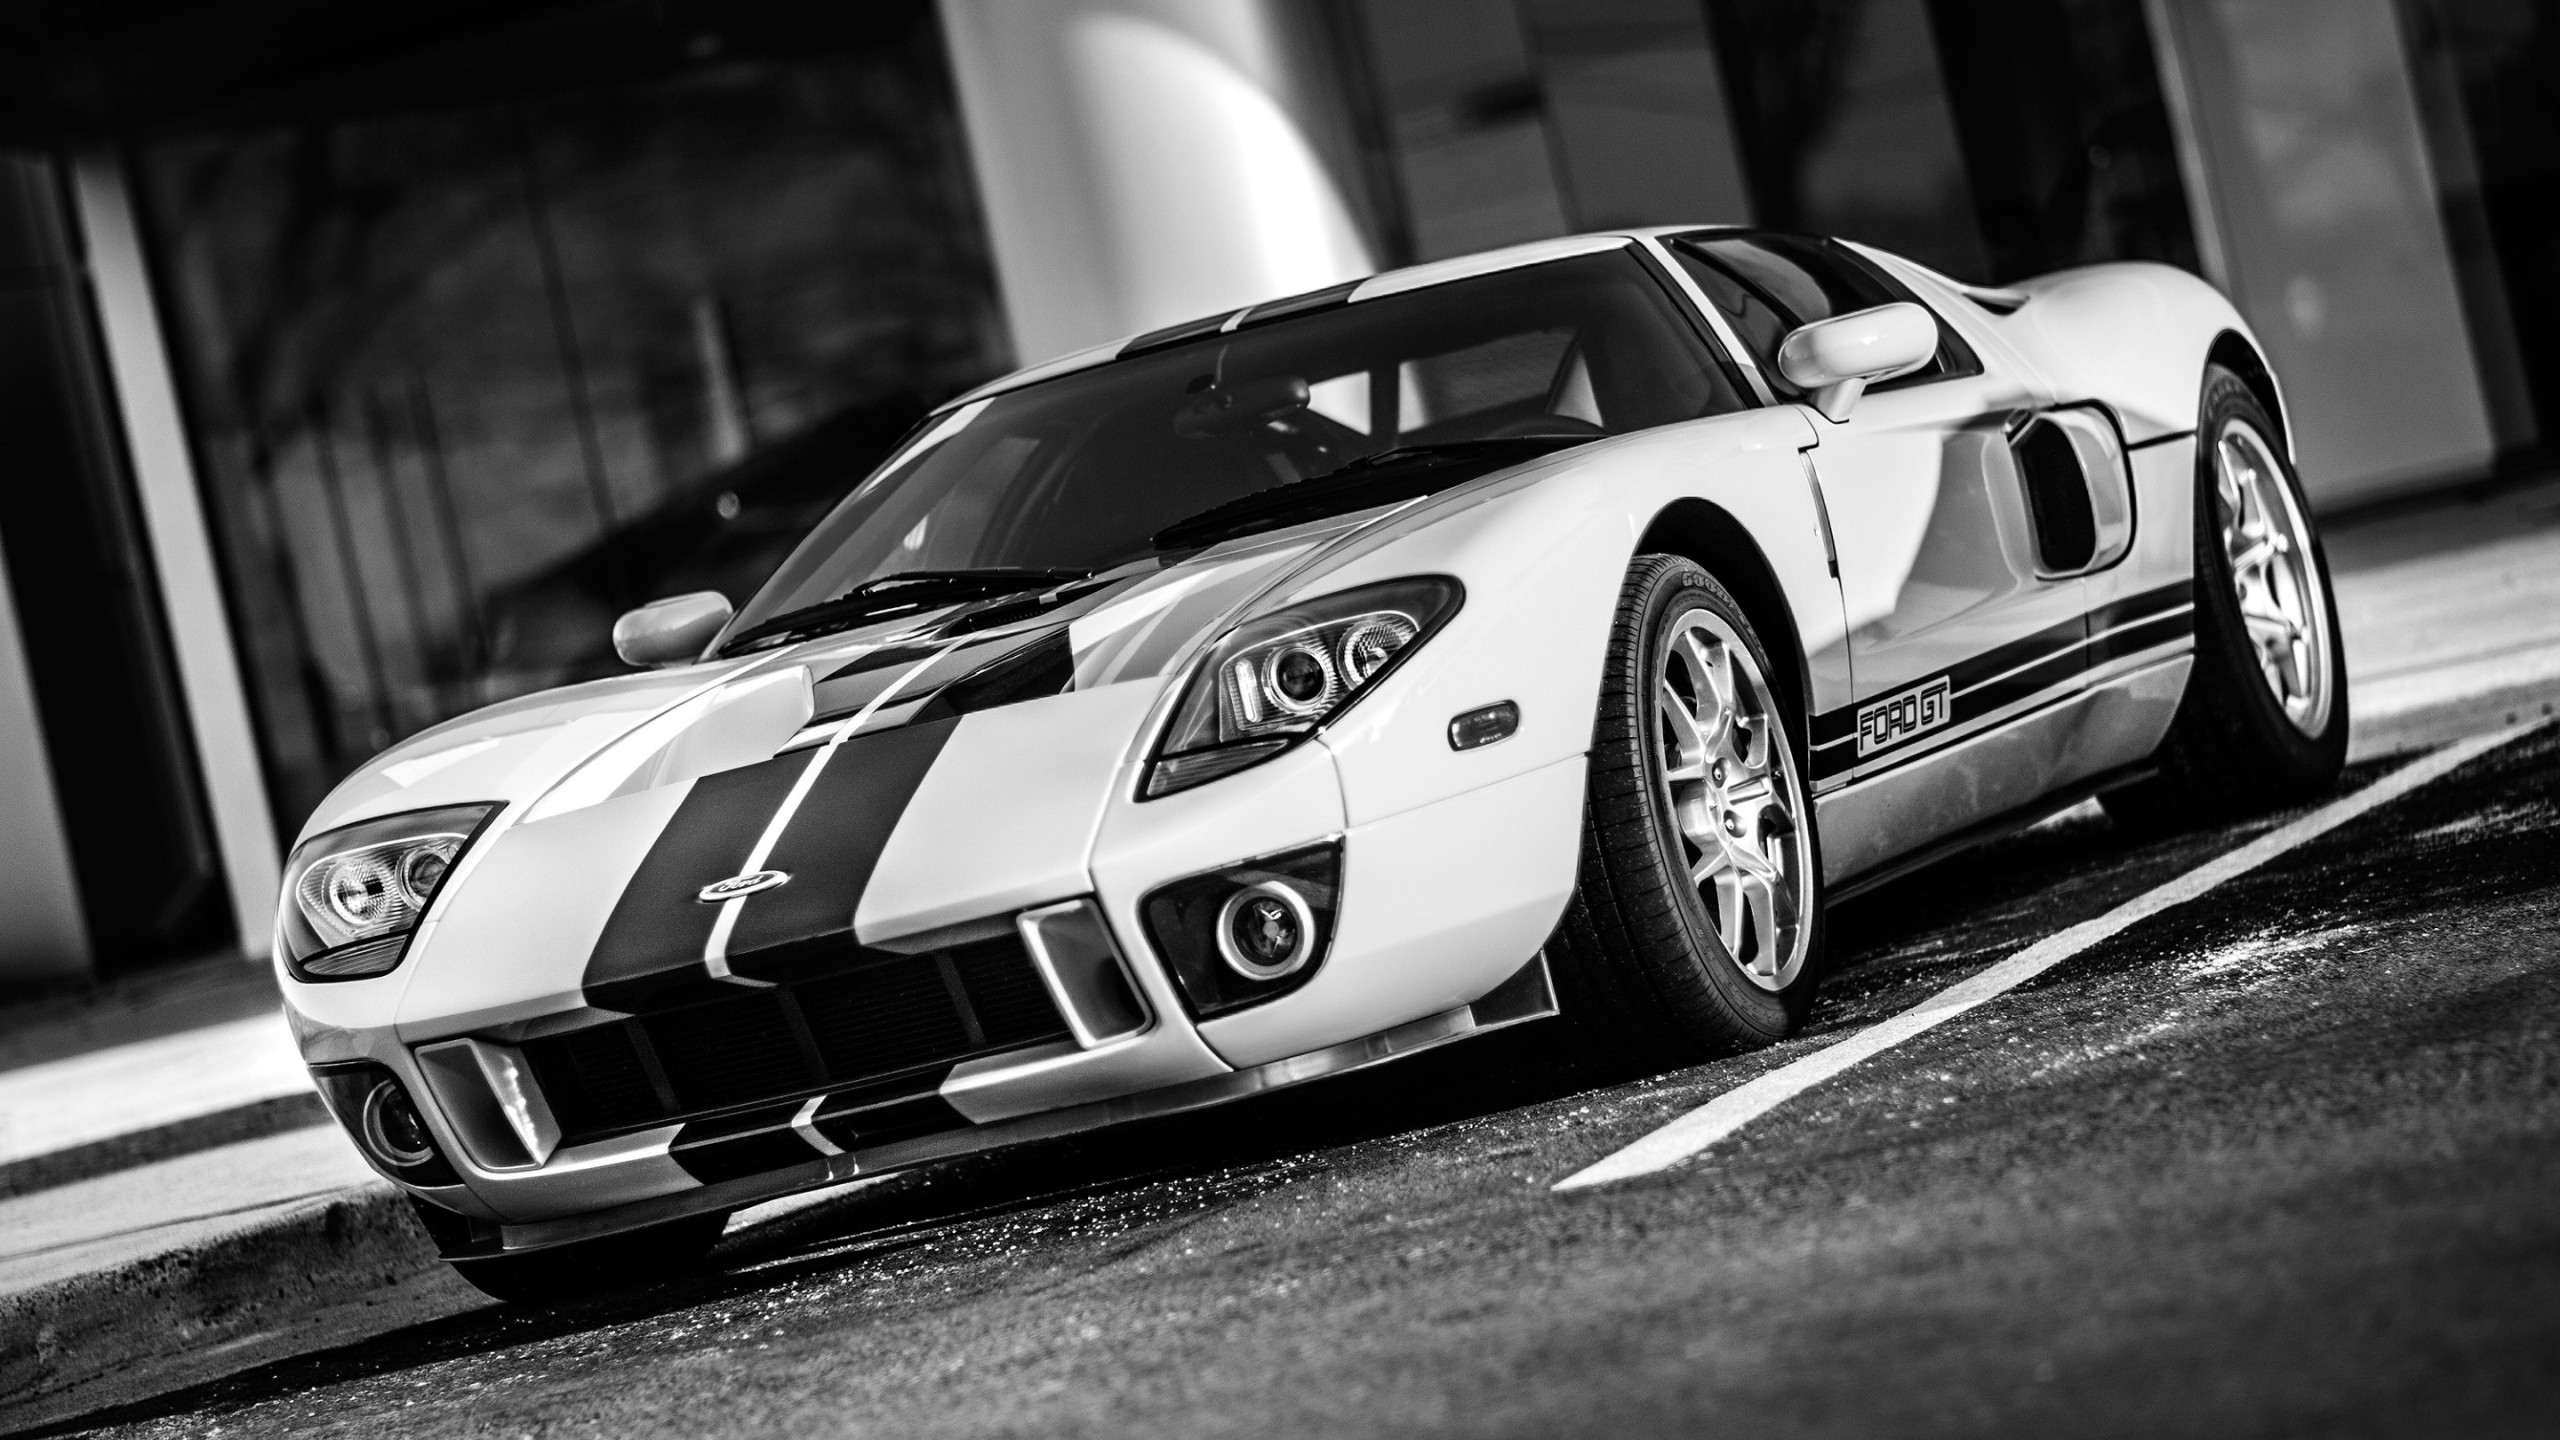 Ford GT wallpaper 2560x1440